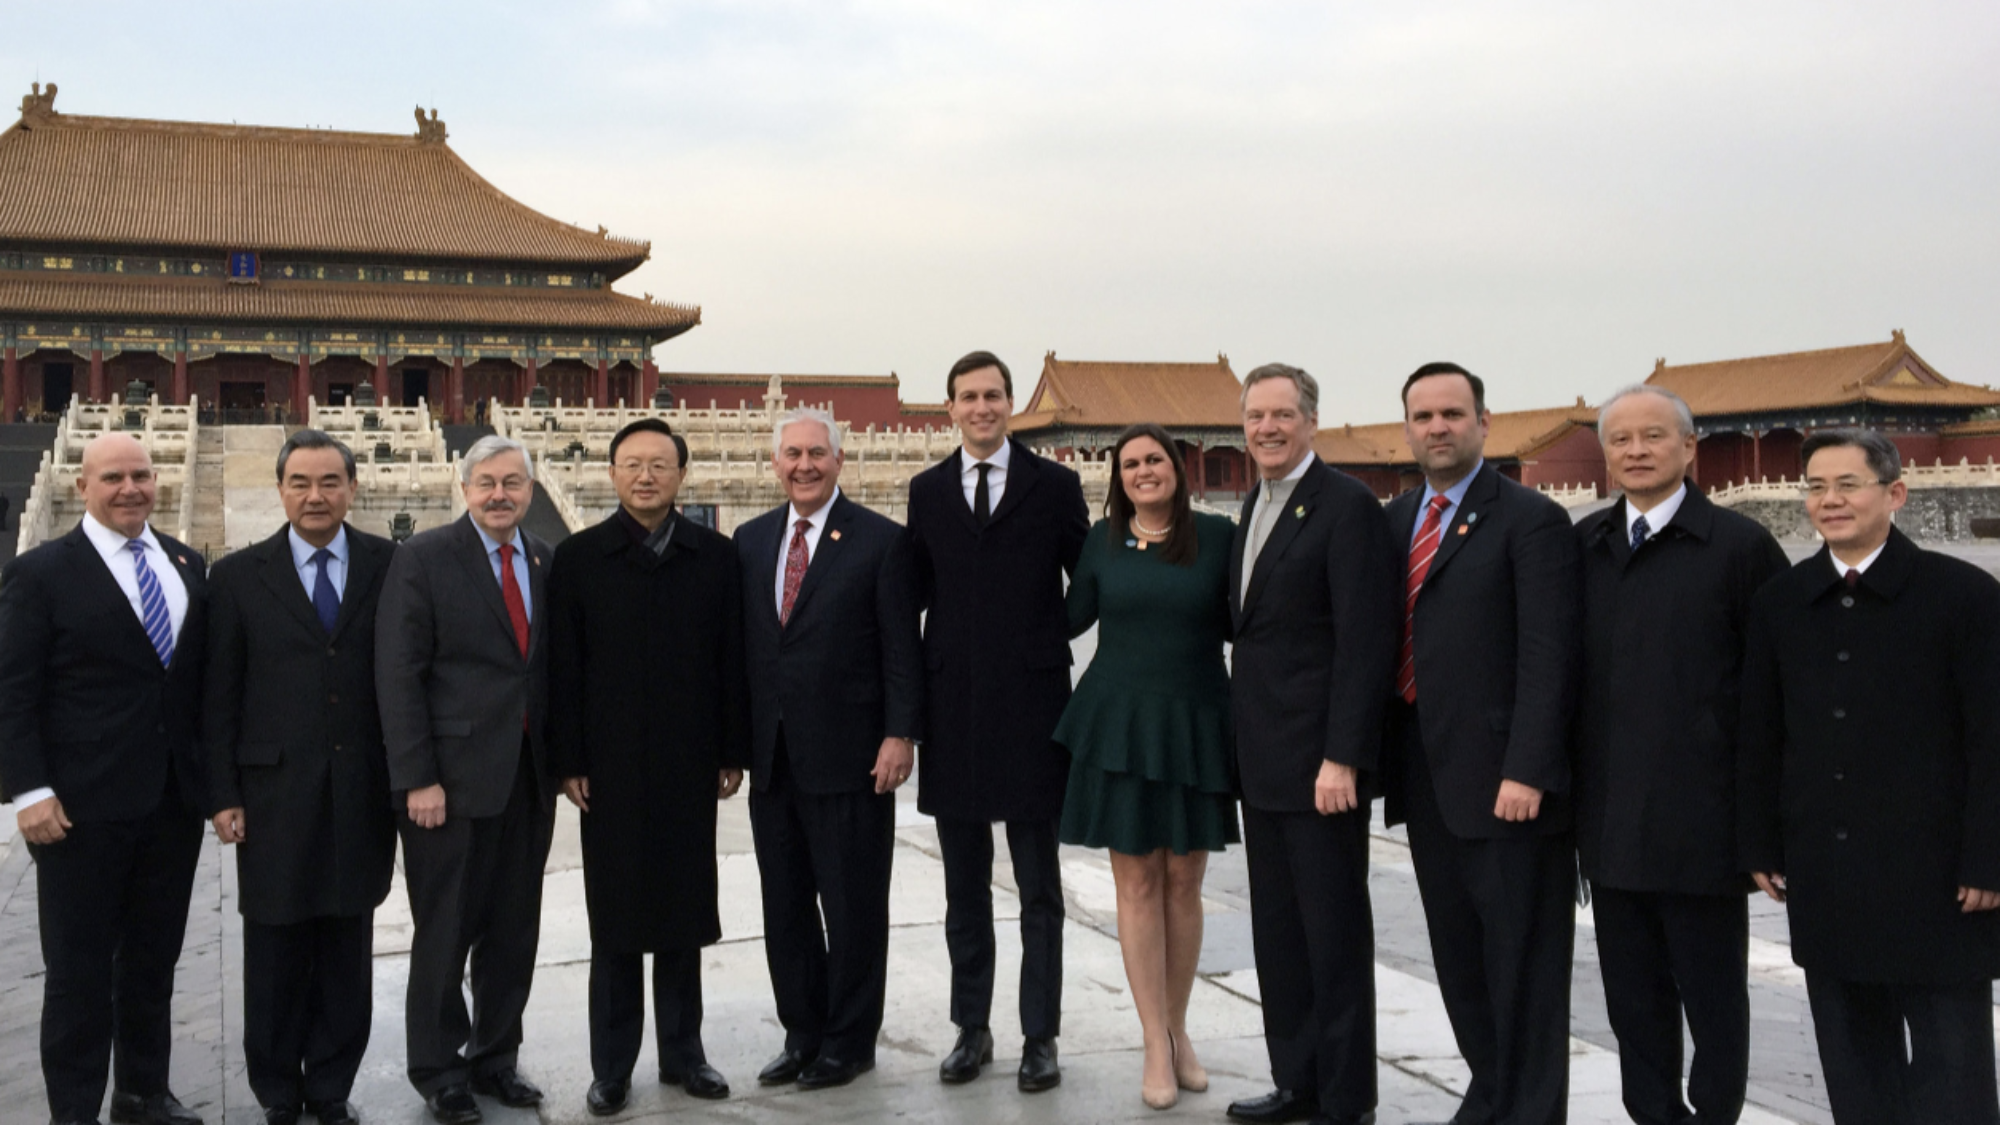 Senior U.S. and Chinese government officials pose for a photo in front of buildings in the Forbidden City, Beijing.